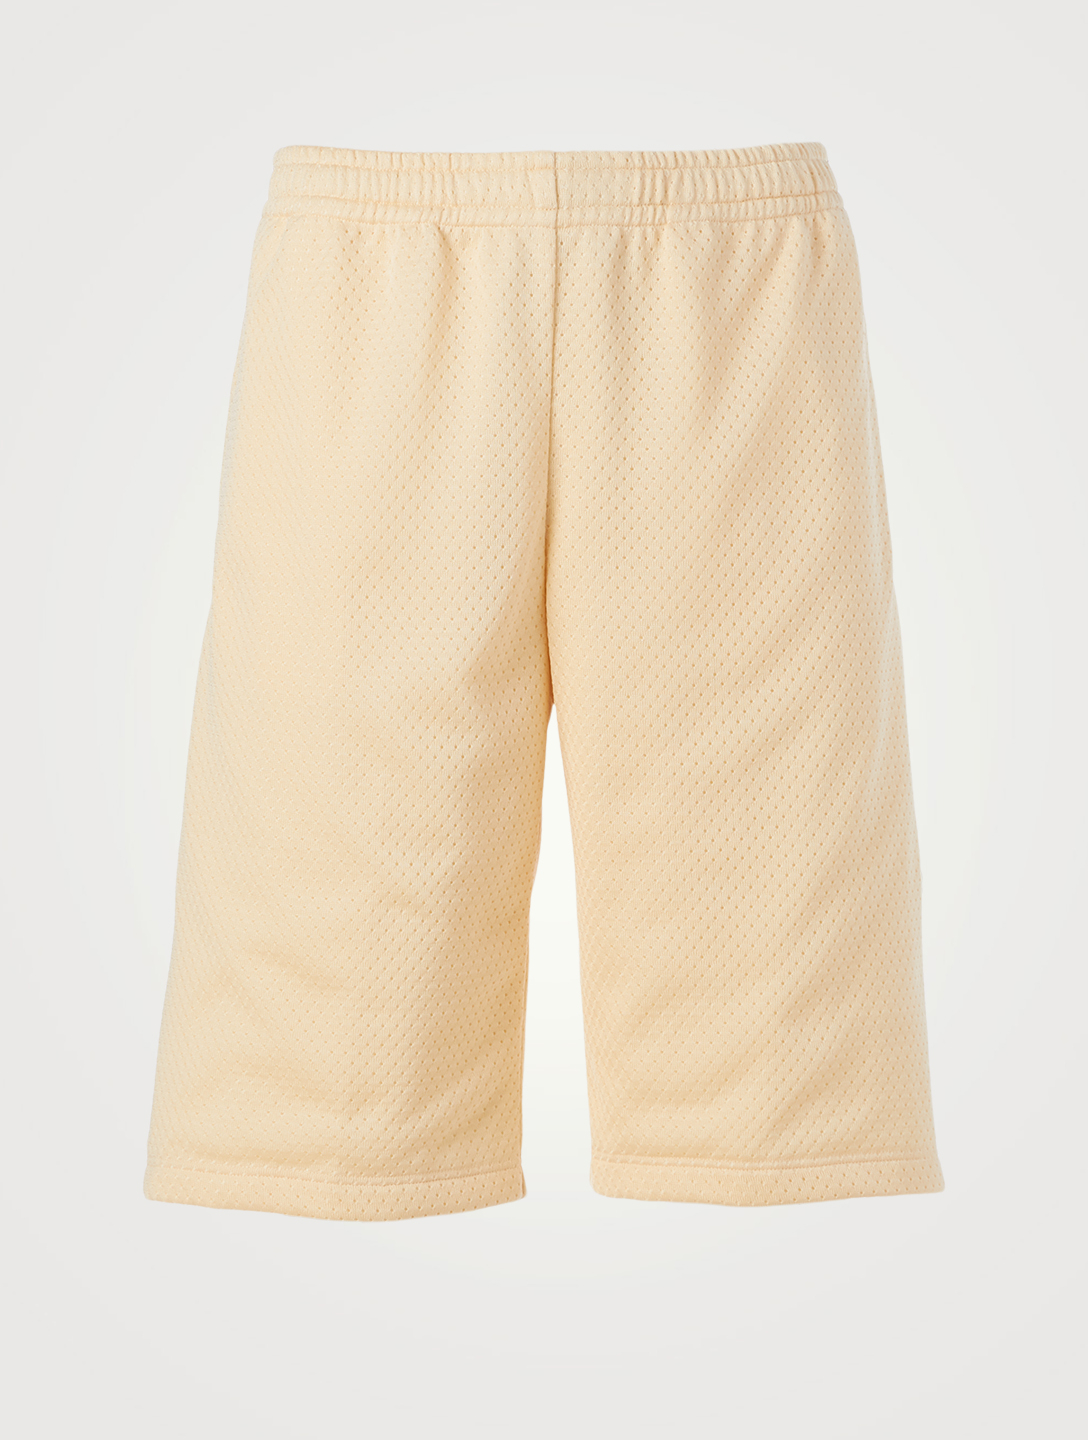 GUCCI Mesh Shorts With Patch Men's White